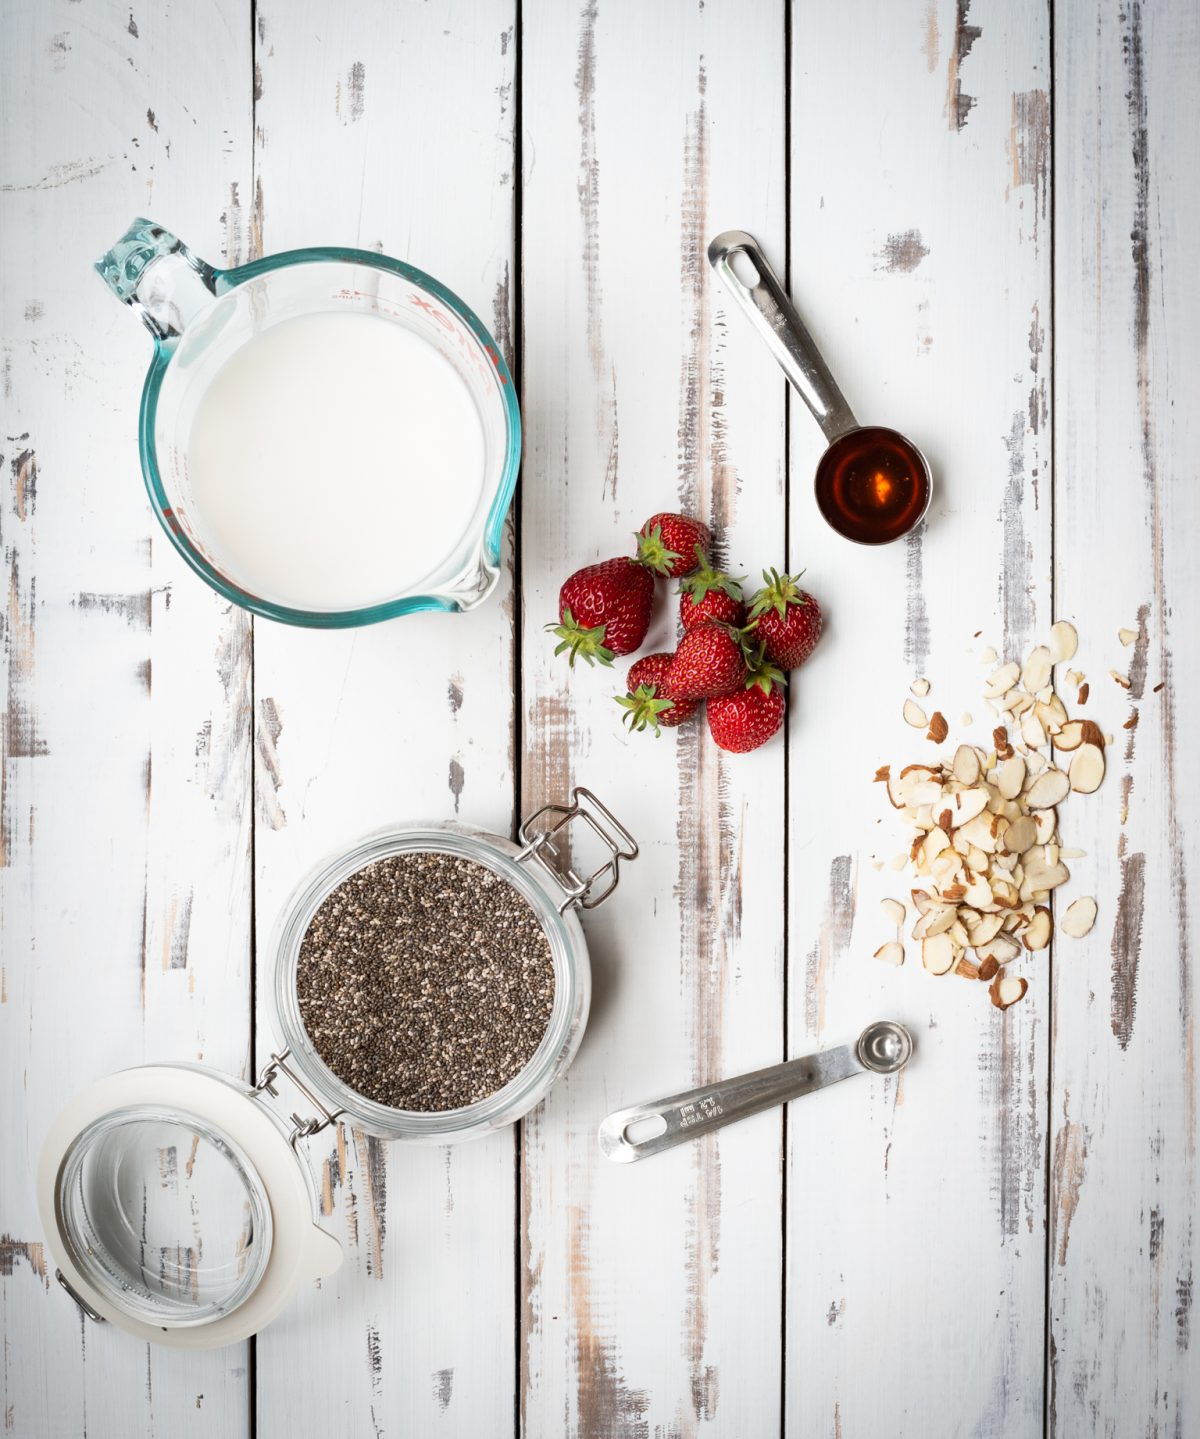 Almond chia seed pudding picture of ingredients